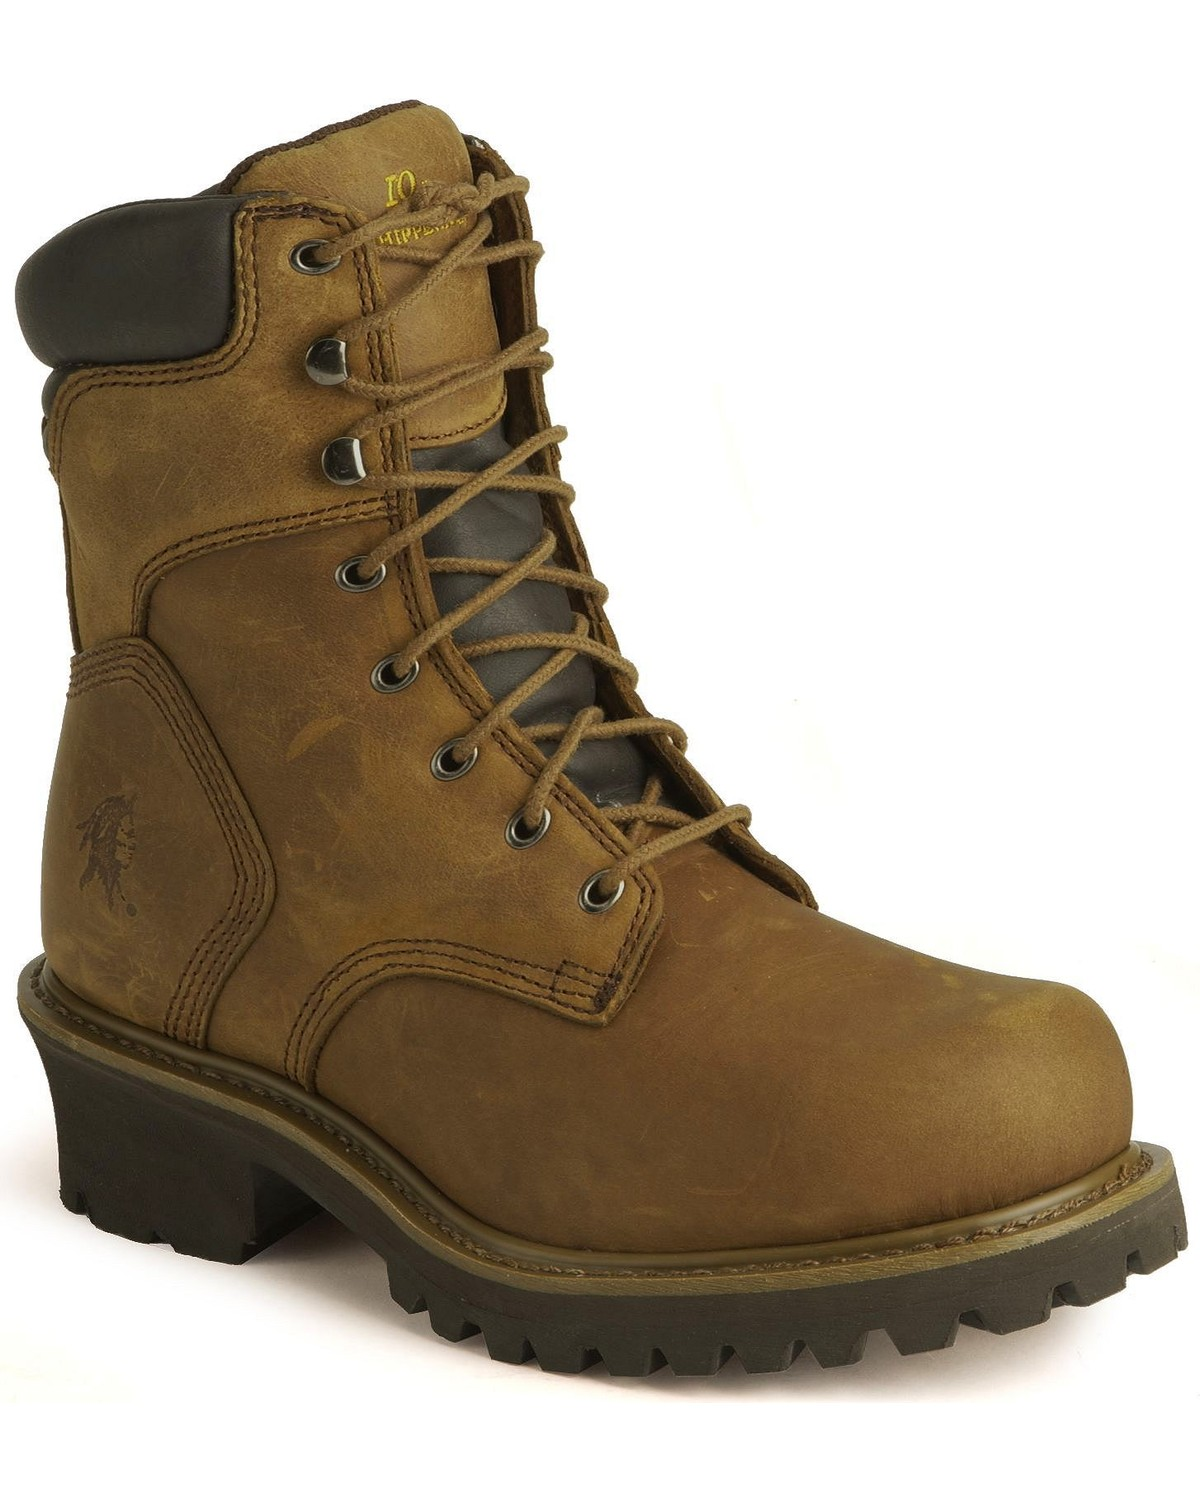 Chippewa Men S Steel Toe Insulated Logger Work Boots